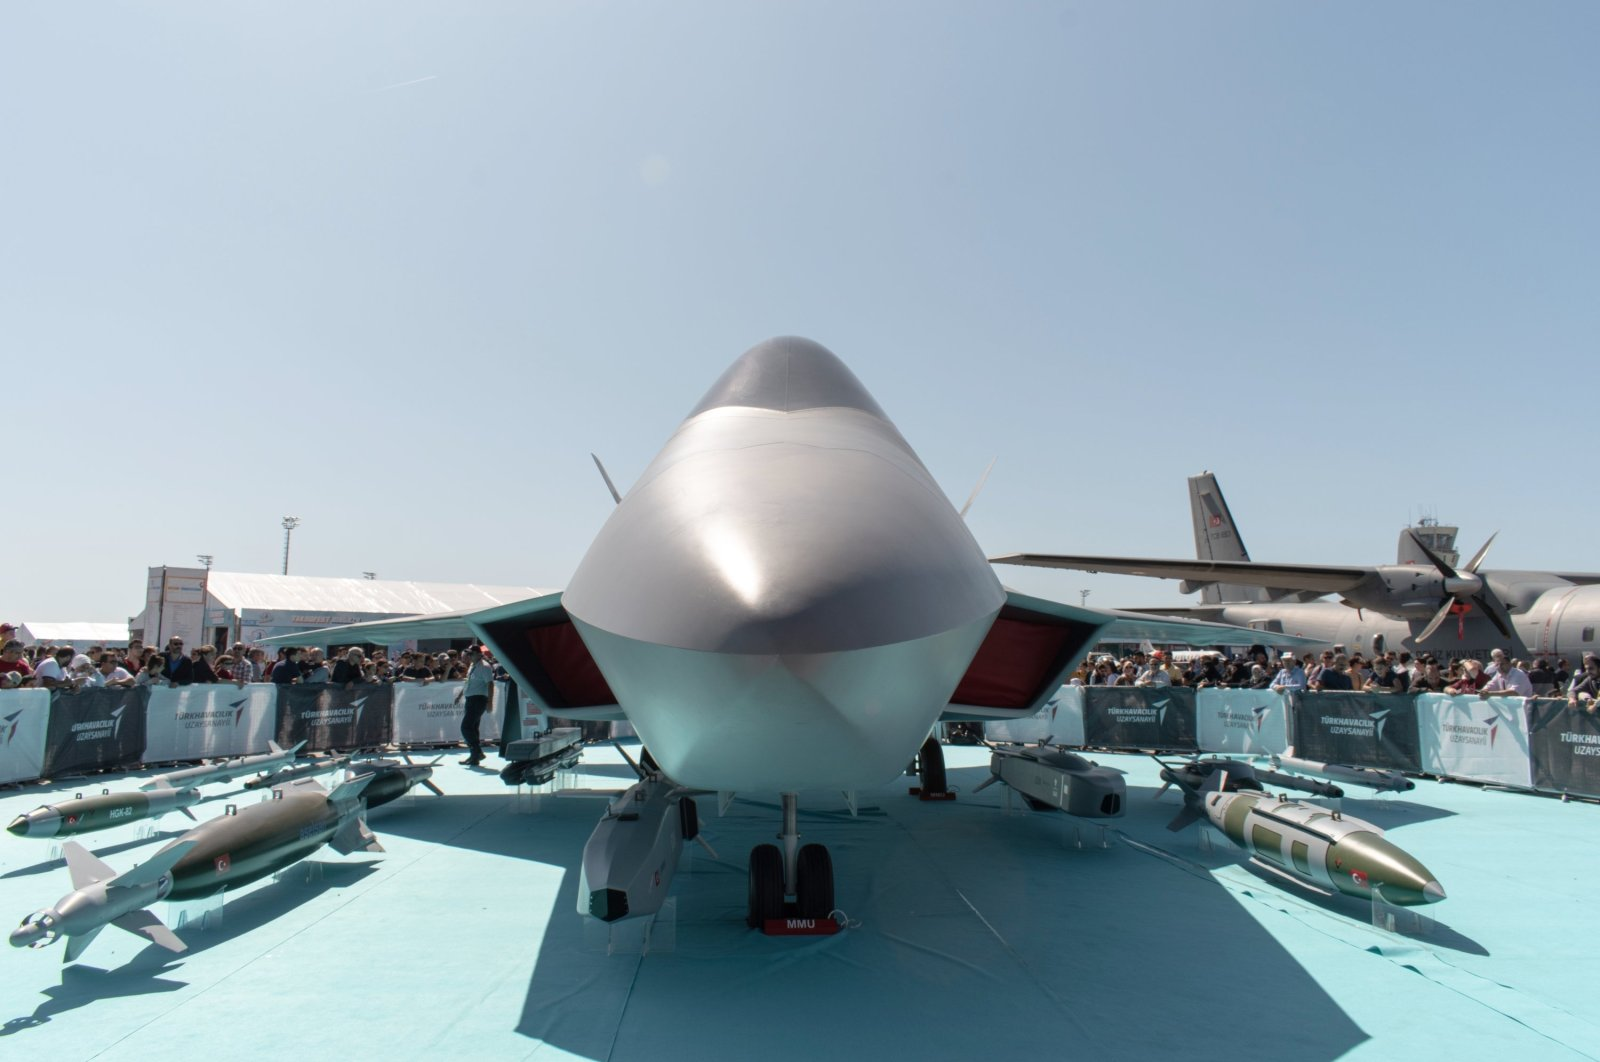 A life-size mock-up of the National Combat Aircraft (MMU) on display during Teknofest held between Sept. 17-22, 2019, at Atatürk Airport, Istanbul, Turkey. (Shutterstock Photo)